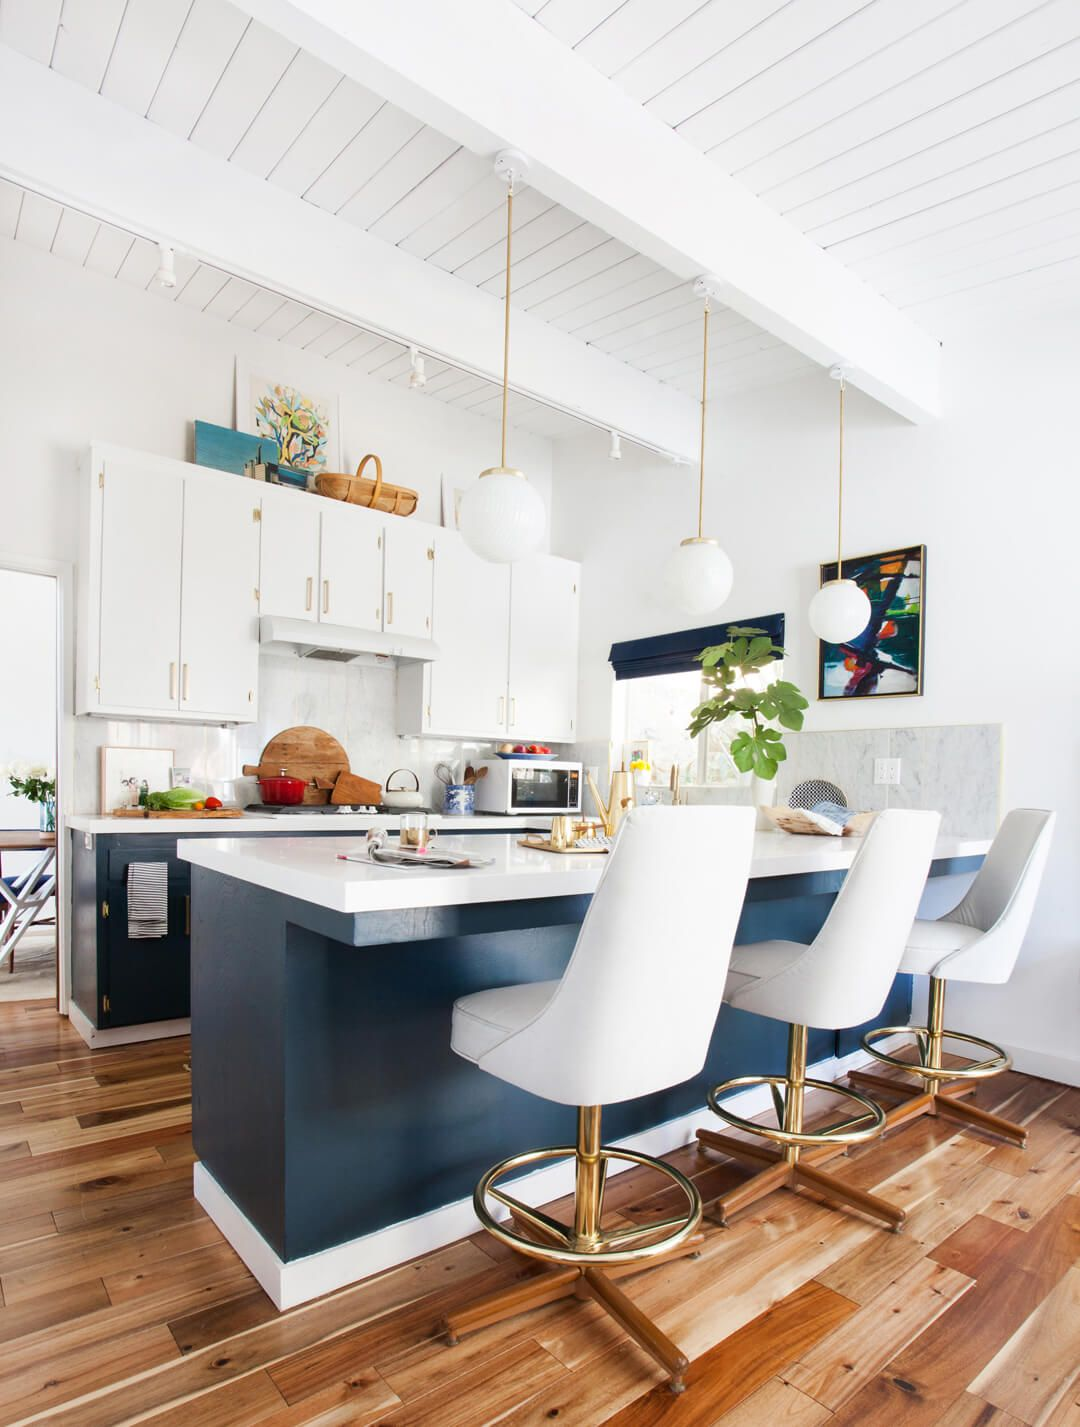 Courtesy of Tessa Neustadt for Emily Henderson Designs & 50 Best Small Kitchen Design Ideas - Decor Solutions for Small Kitchens